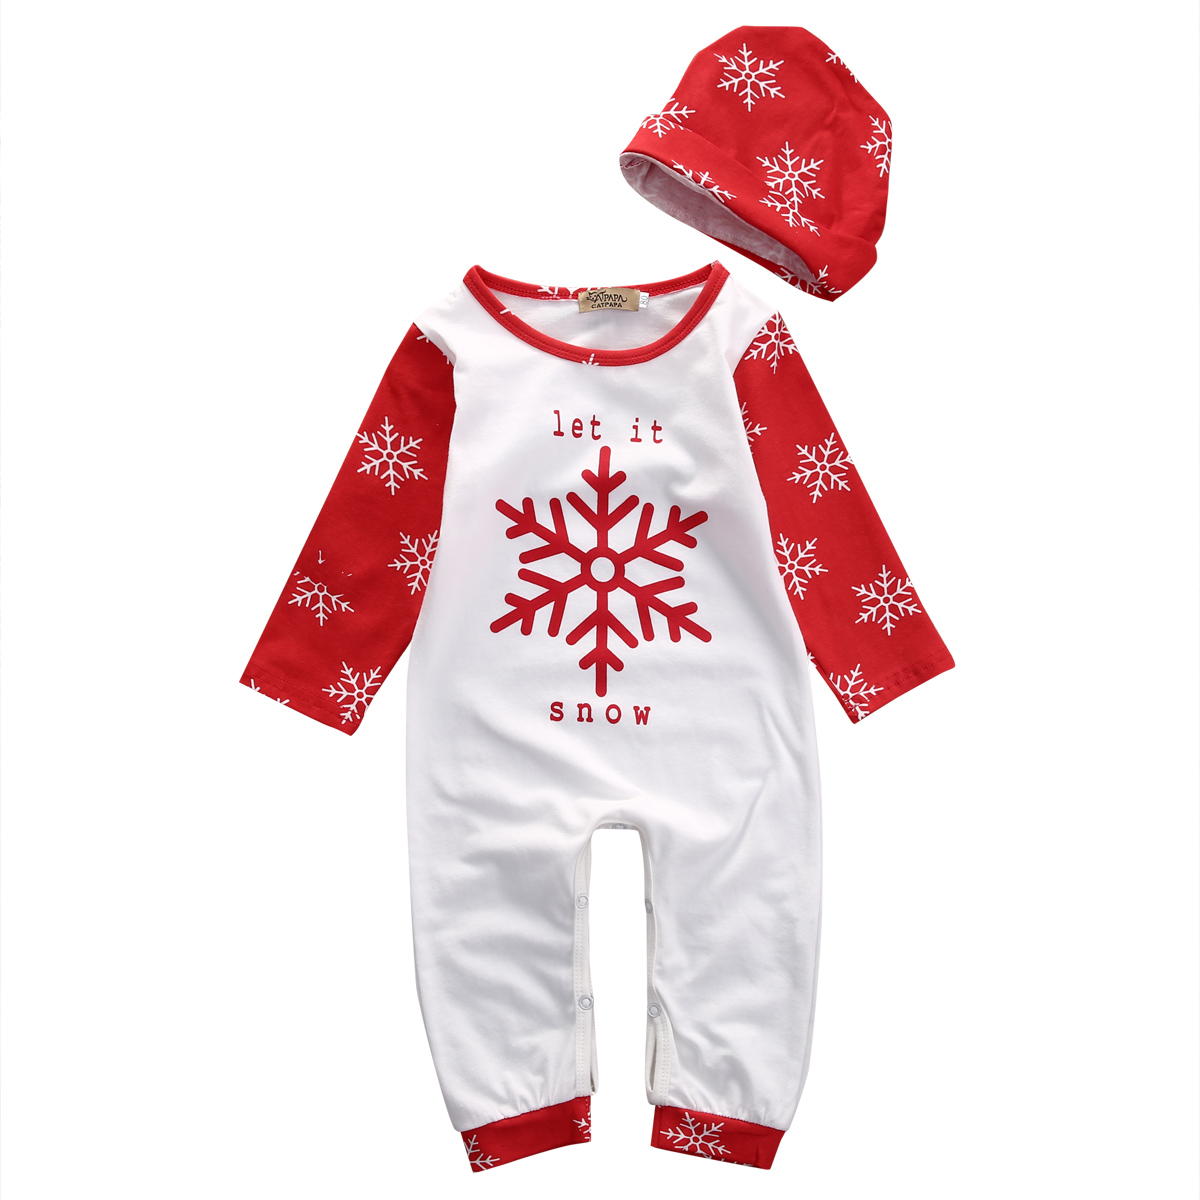 XMAS Kids Newborn Toddler Baby Boys Girls Snowflake Romper Jumpsuit Outfits Hat Long Sleeve Romper Christmas Clothes Set fashion 2pcs set newborn baby girls jumpsuit toddler girls flower pattern outfit clothes romper bodysuit pants